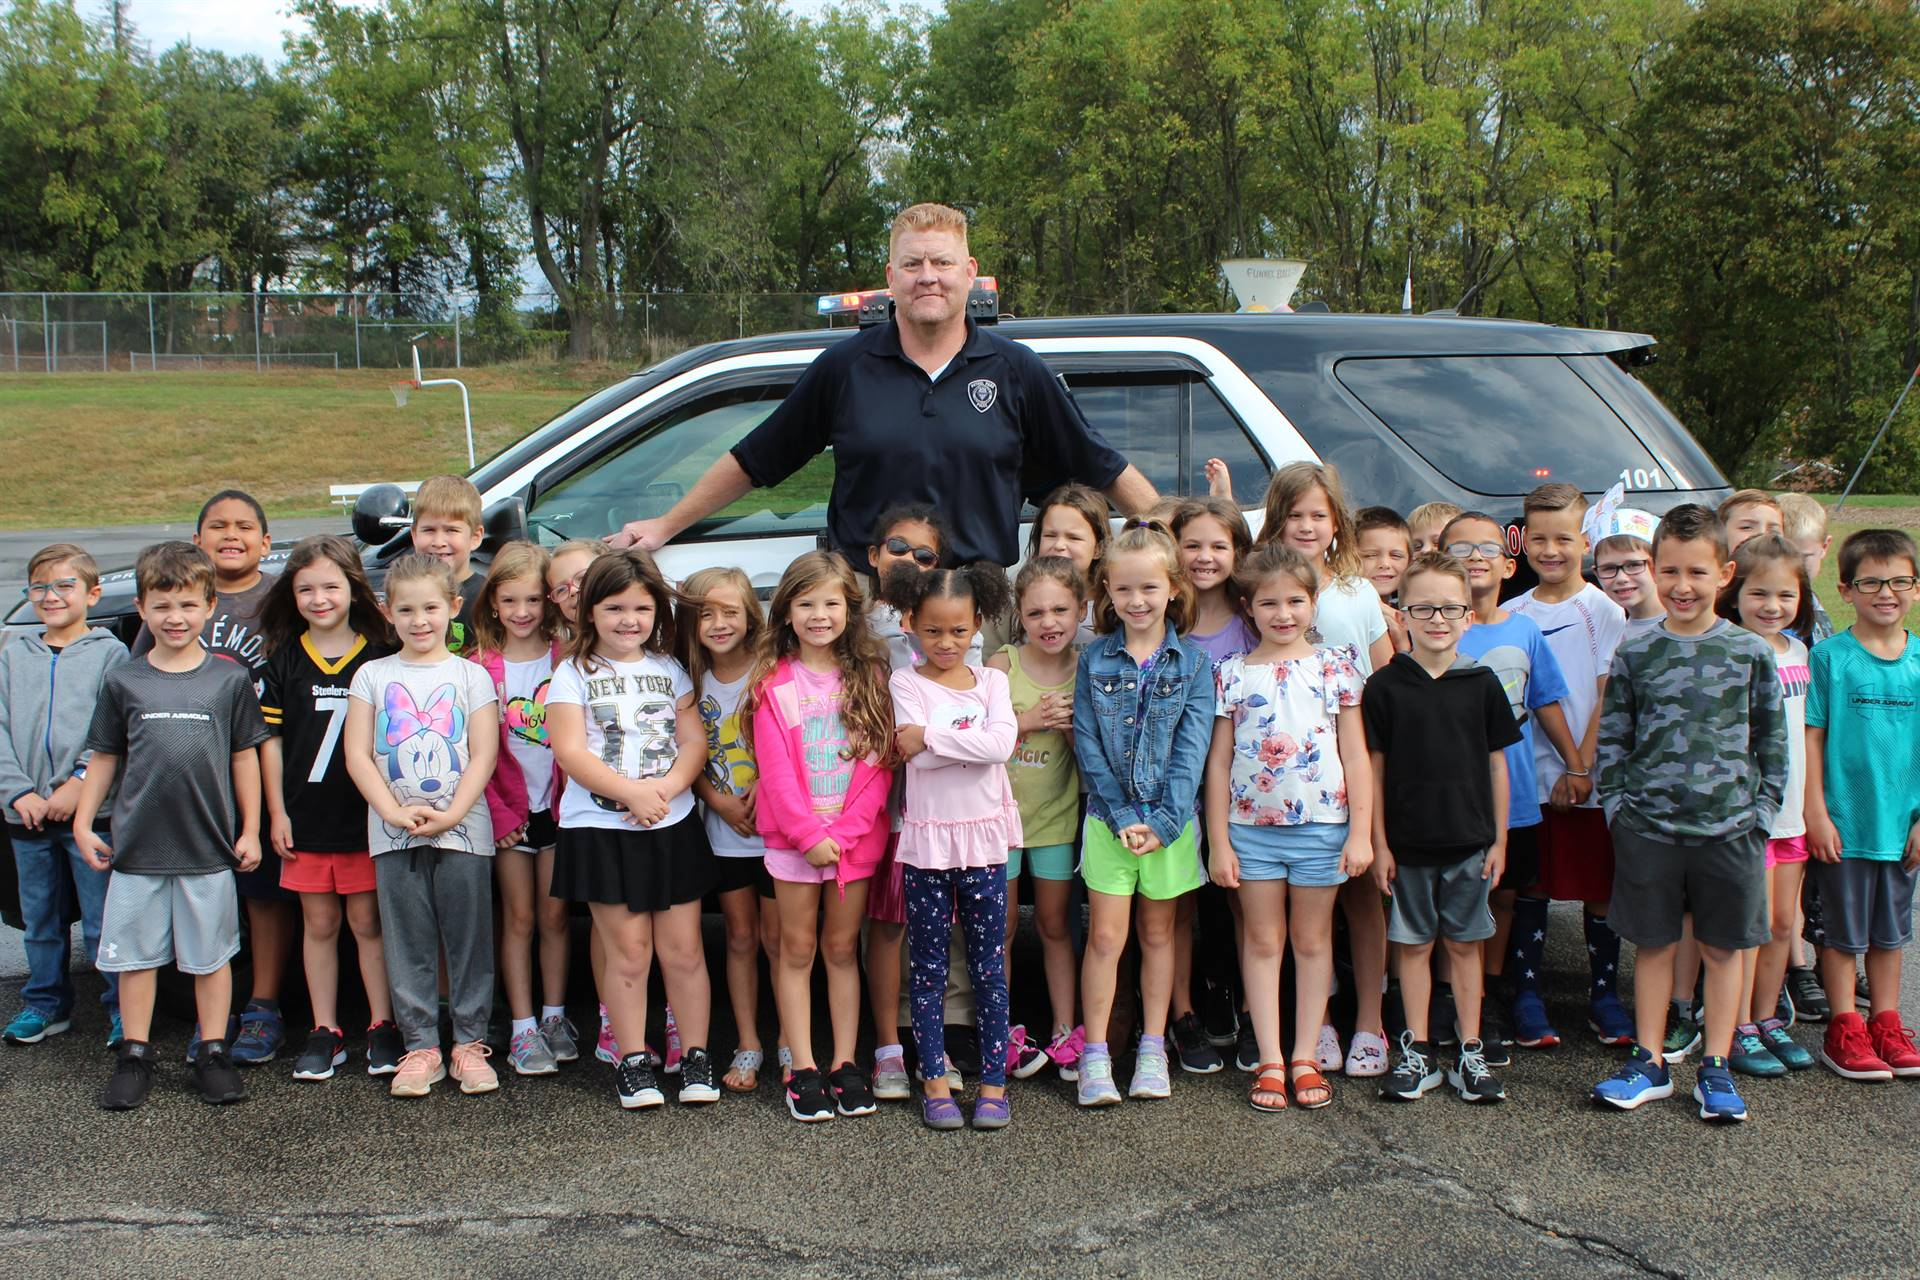 Officer Ken and the first graders